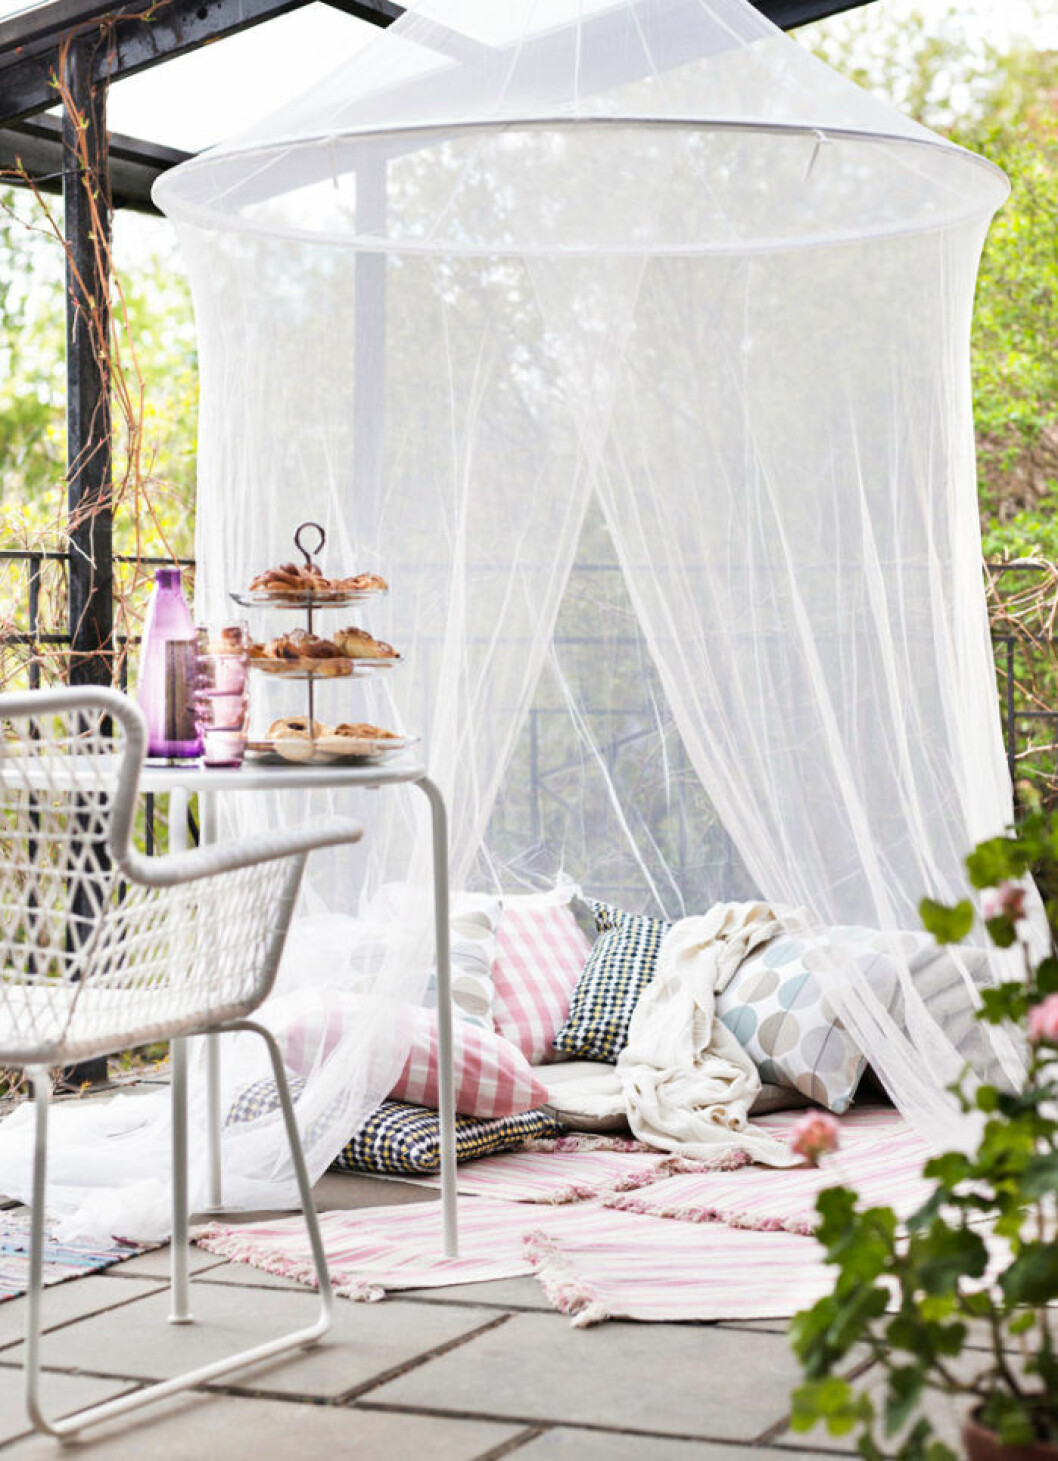 Scandinavian balcony decorated with tulle and pillows.